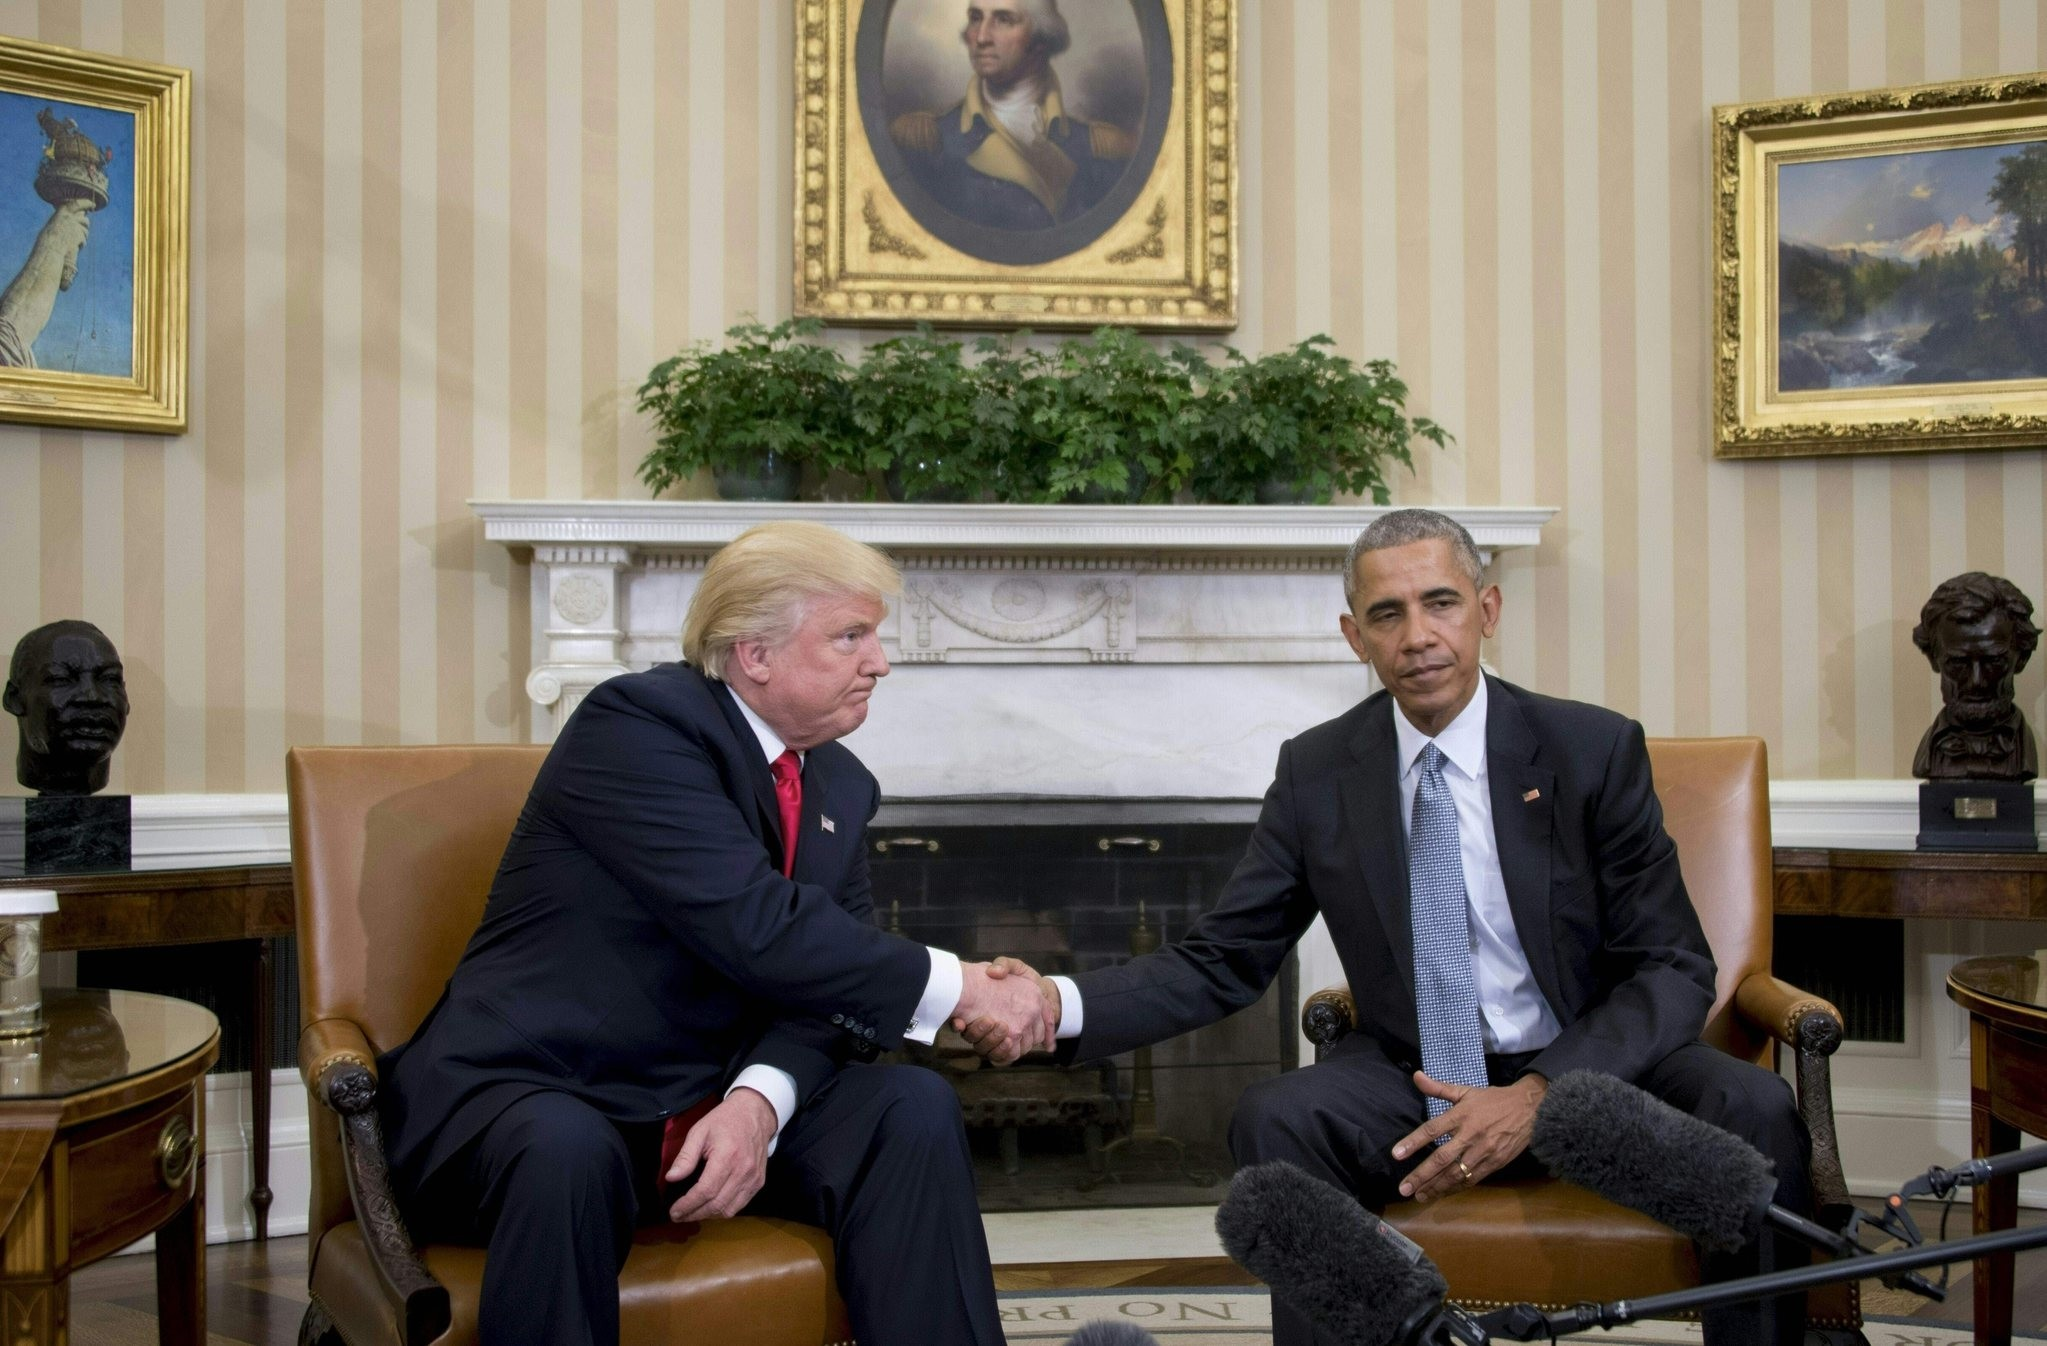 US President Barack Obama shakes hands as he meets with Republican President-elect Donald Trump (L) on transition planning in the Oval Office at the White House on November 10, 2016. (AFP Photo)